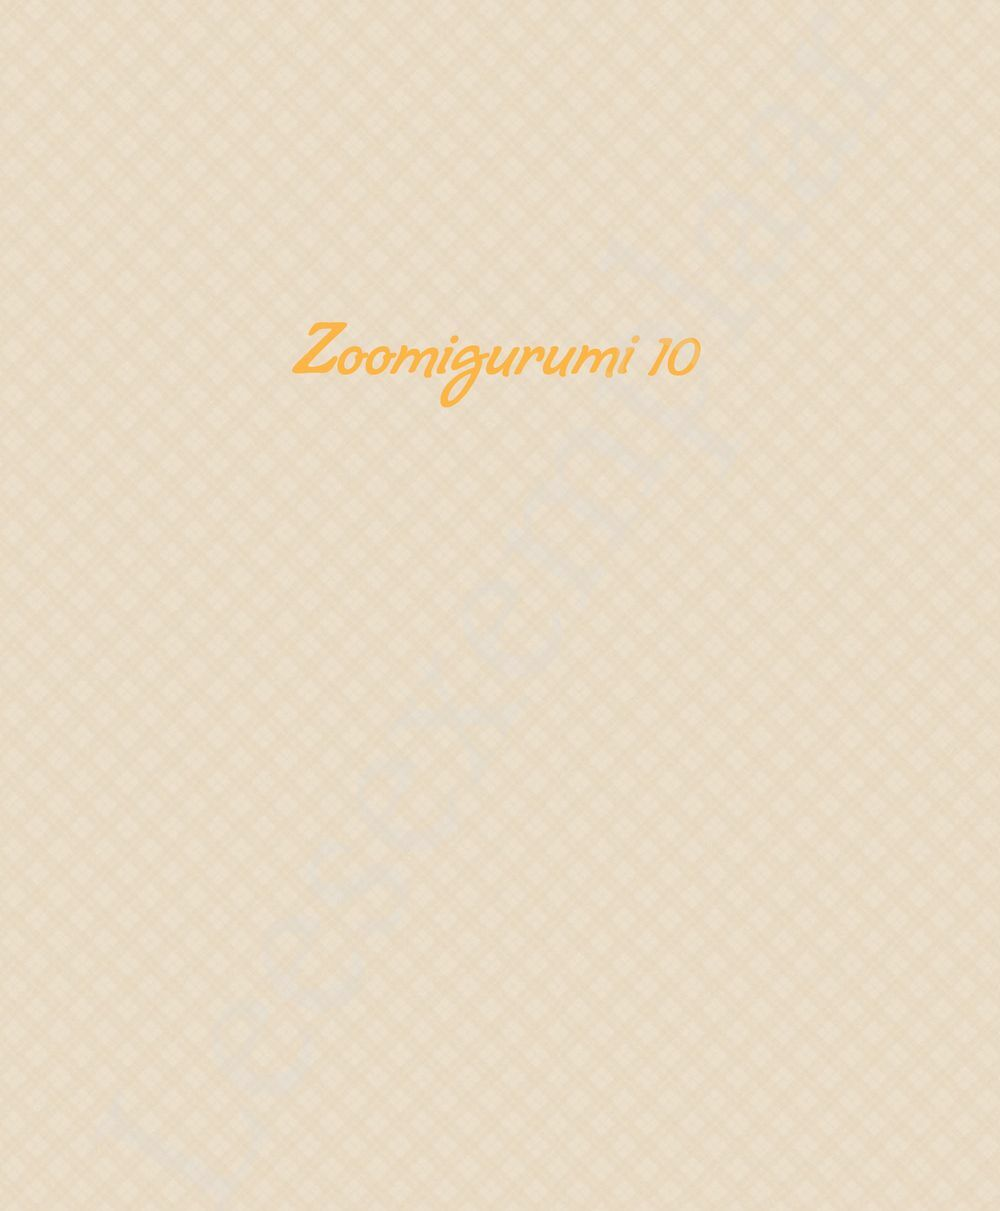 Preview: Zoomigurumi 10